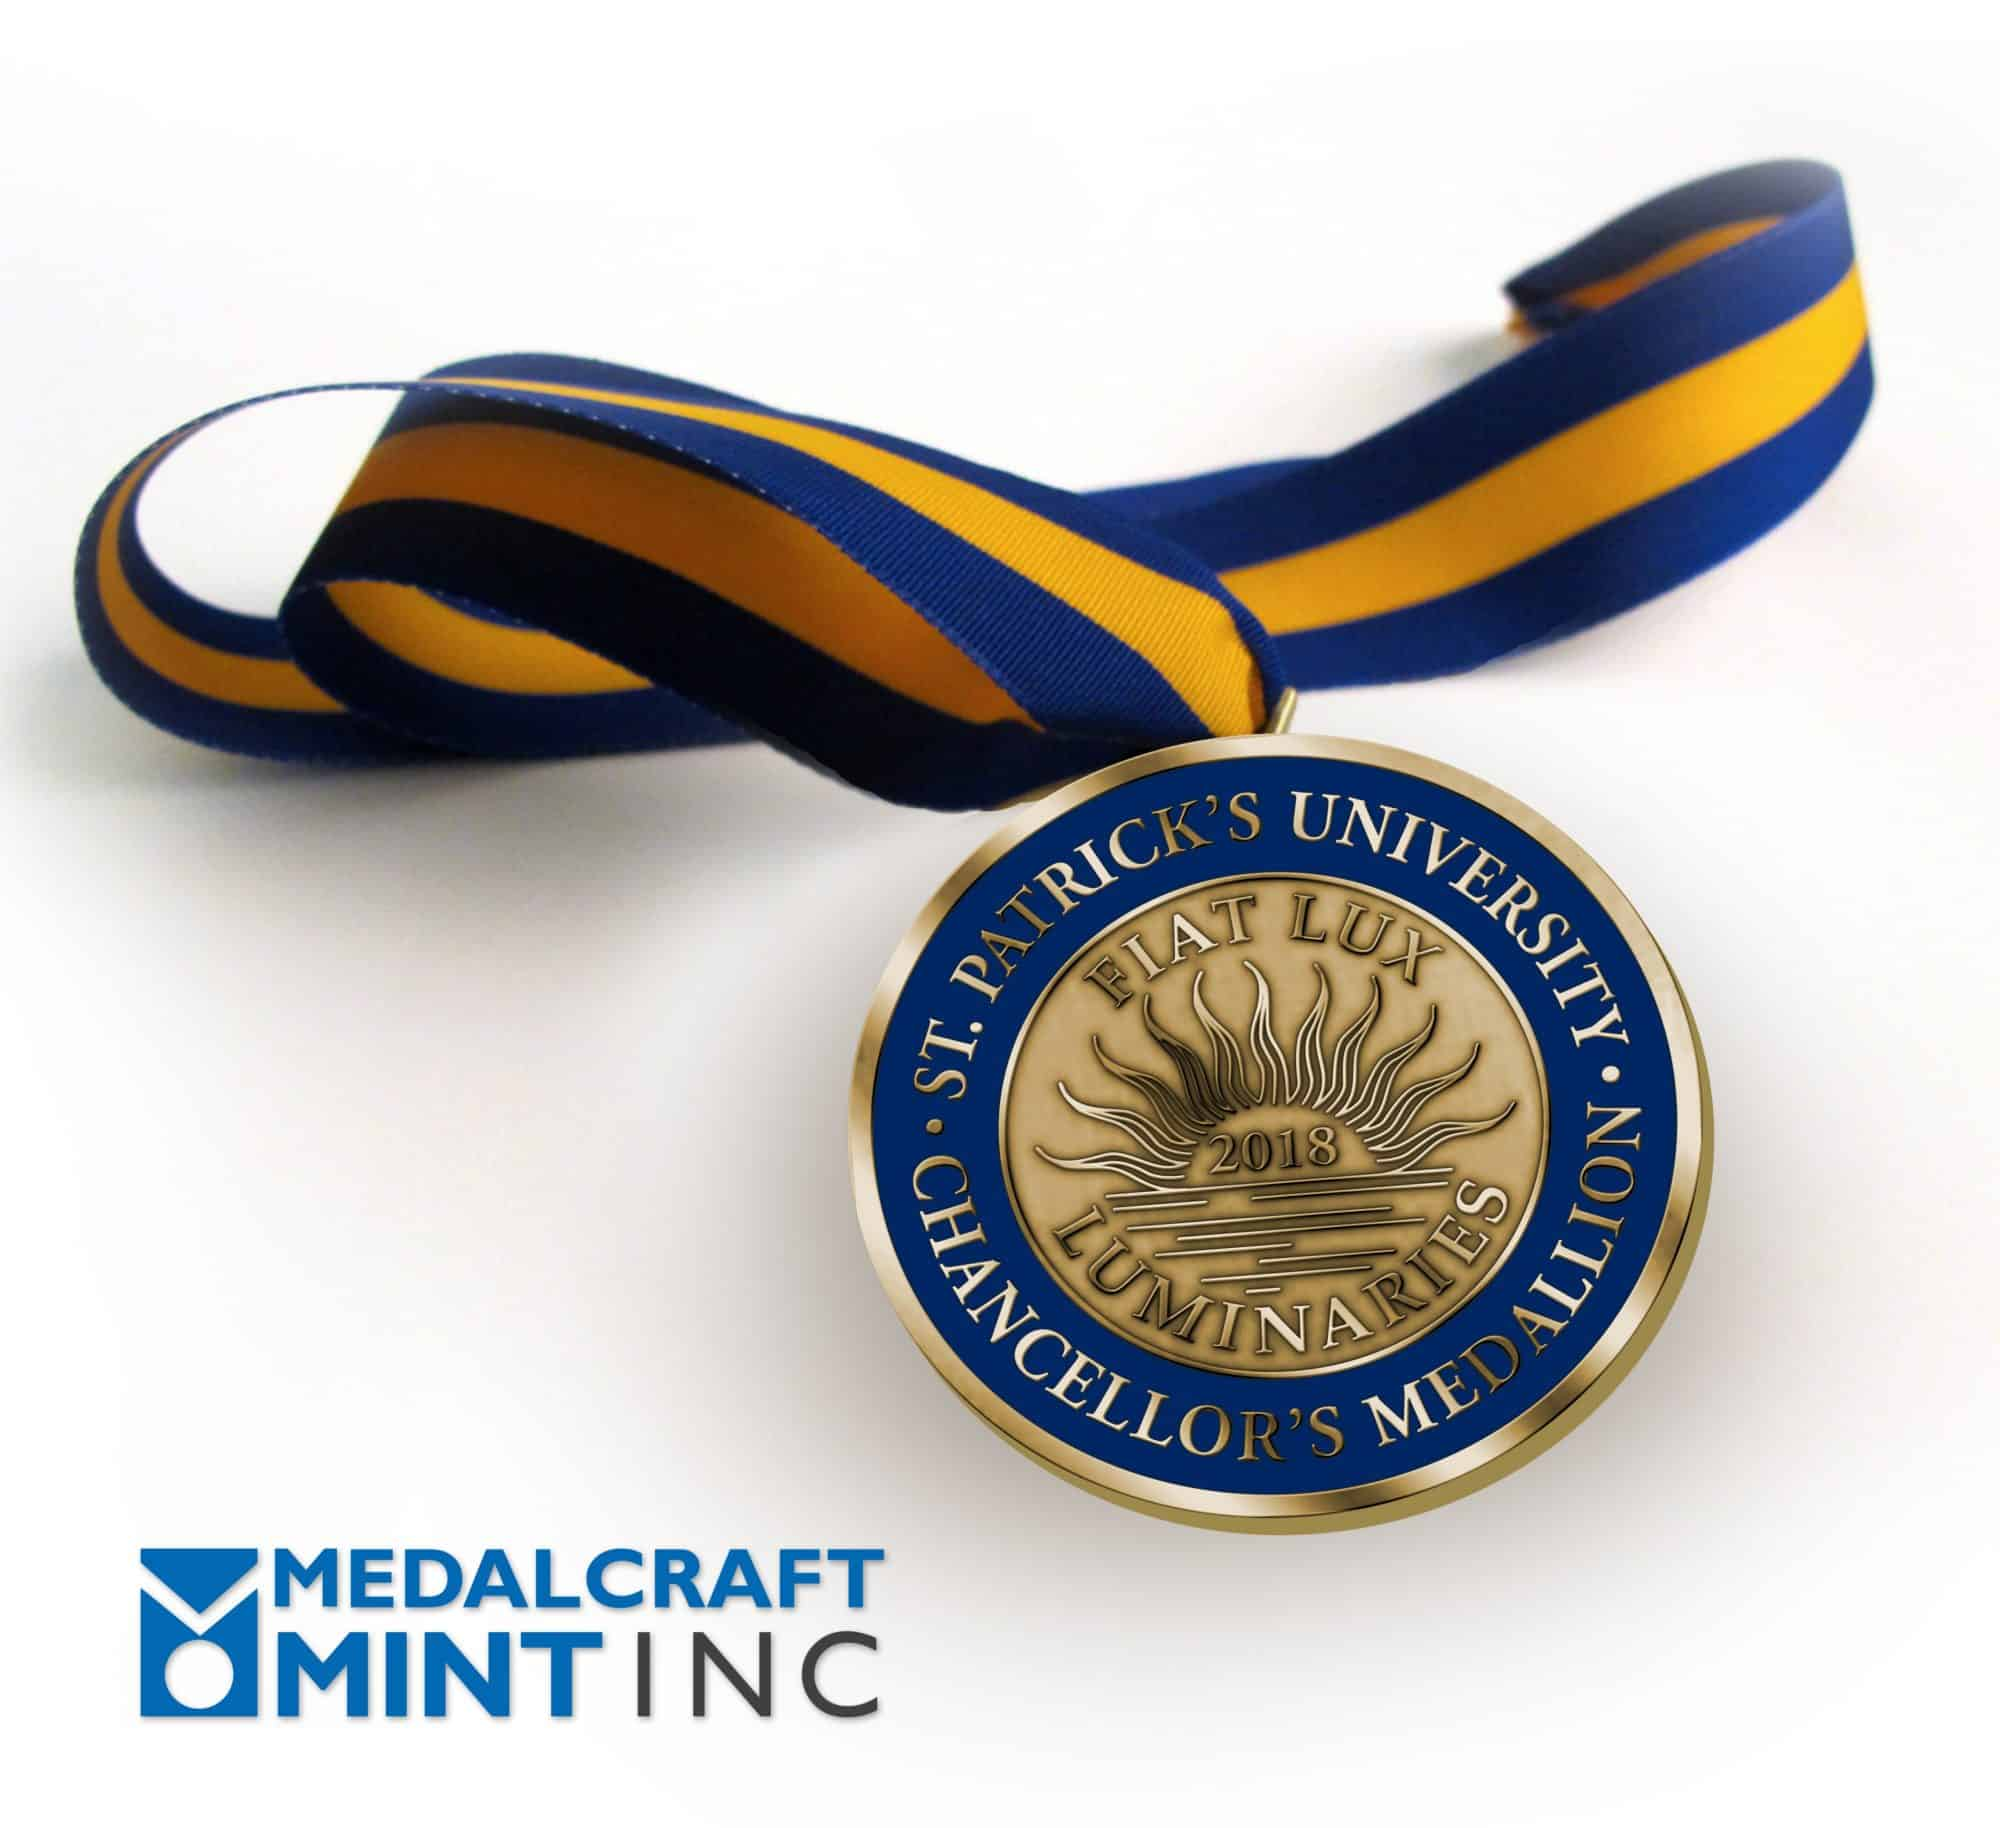 Is it time to refresh your chancellor's medal?